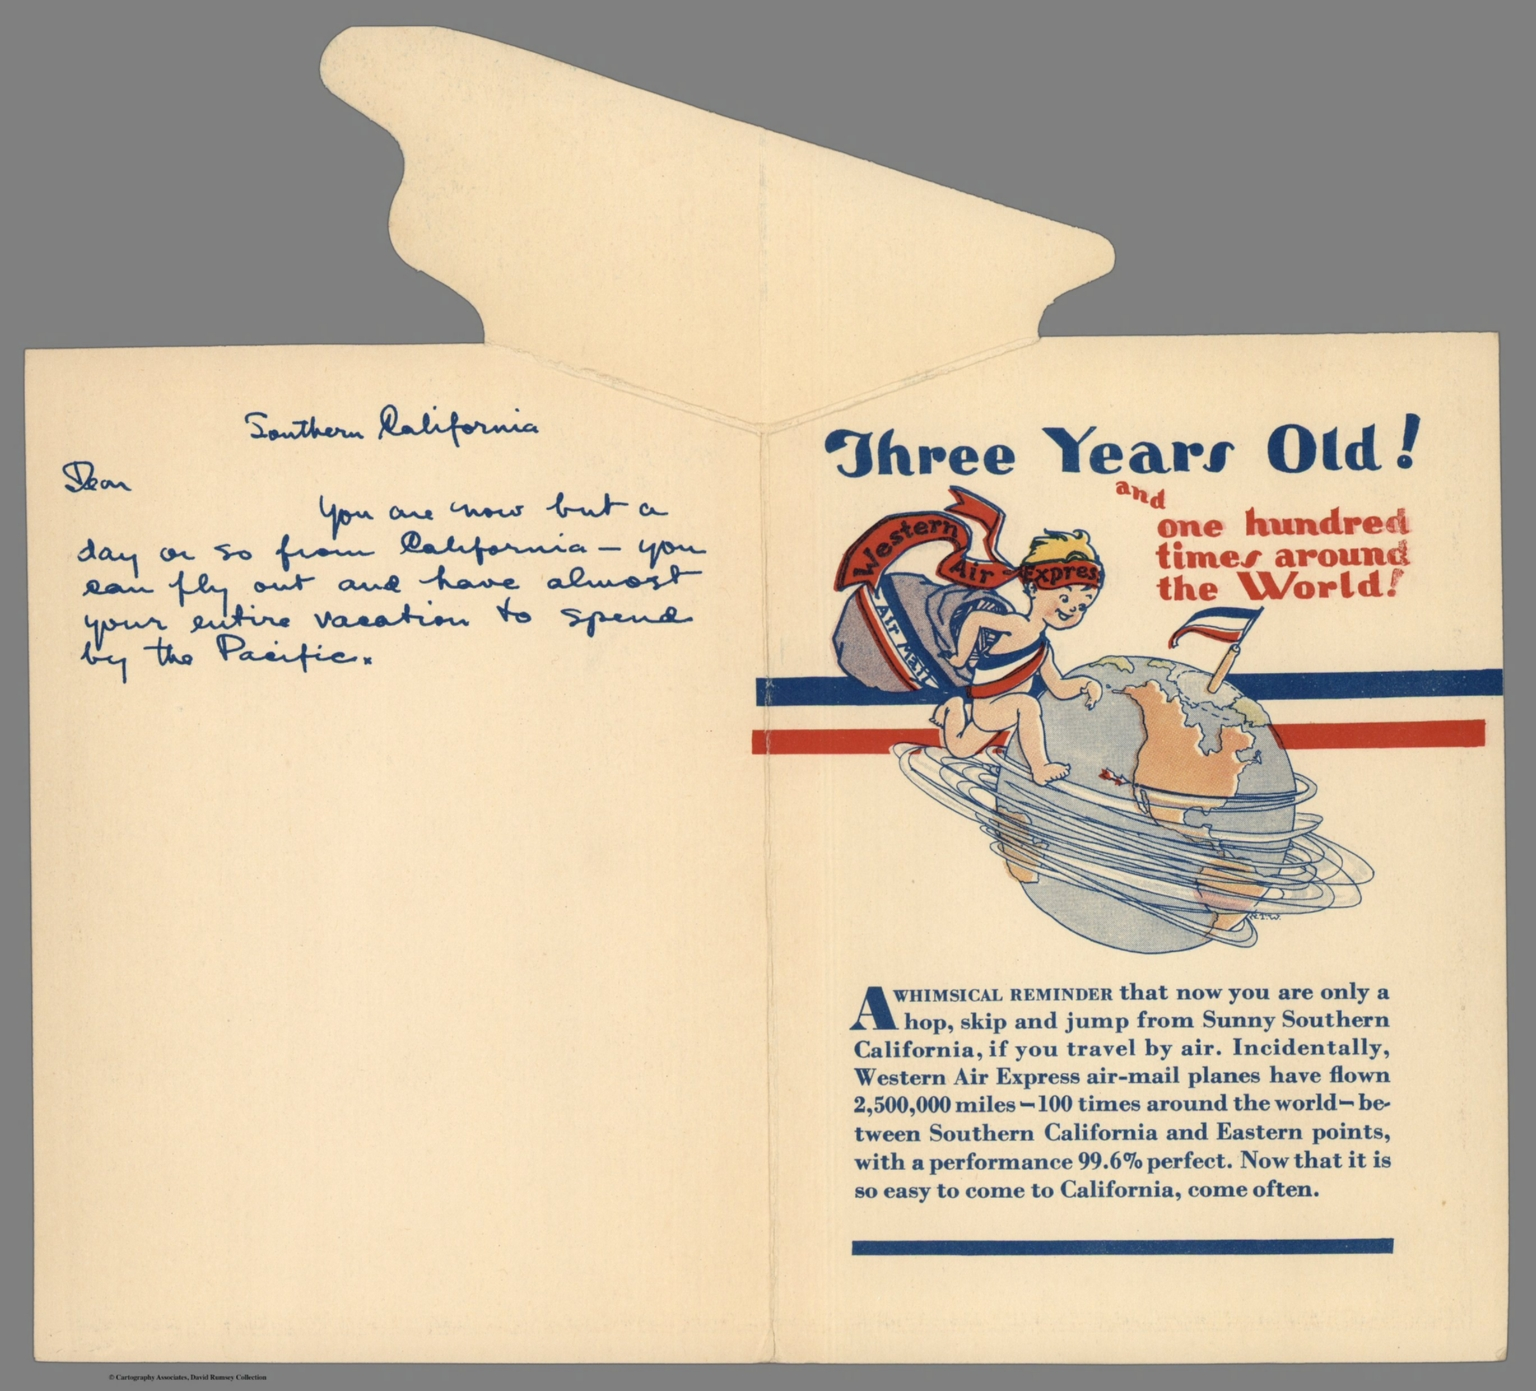 Covers: A cartograph commemorating Southern California's third air mail anniversary April 17, 1929